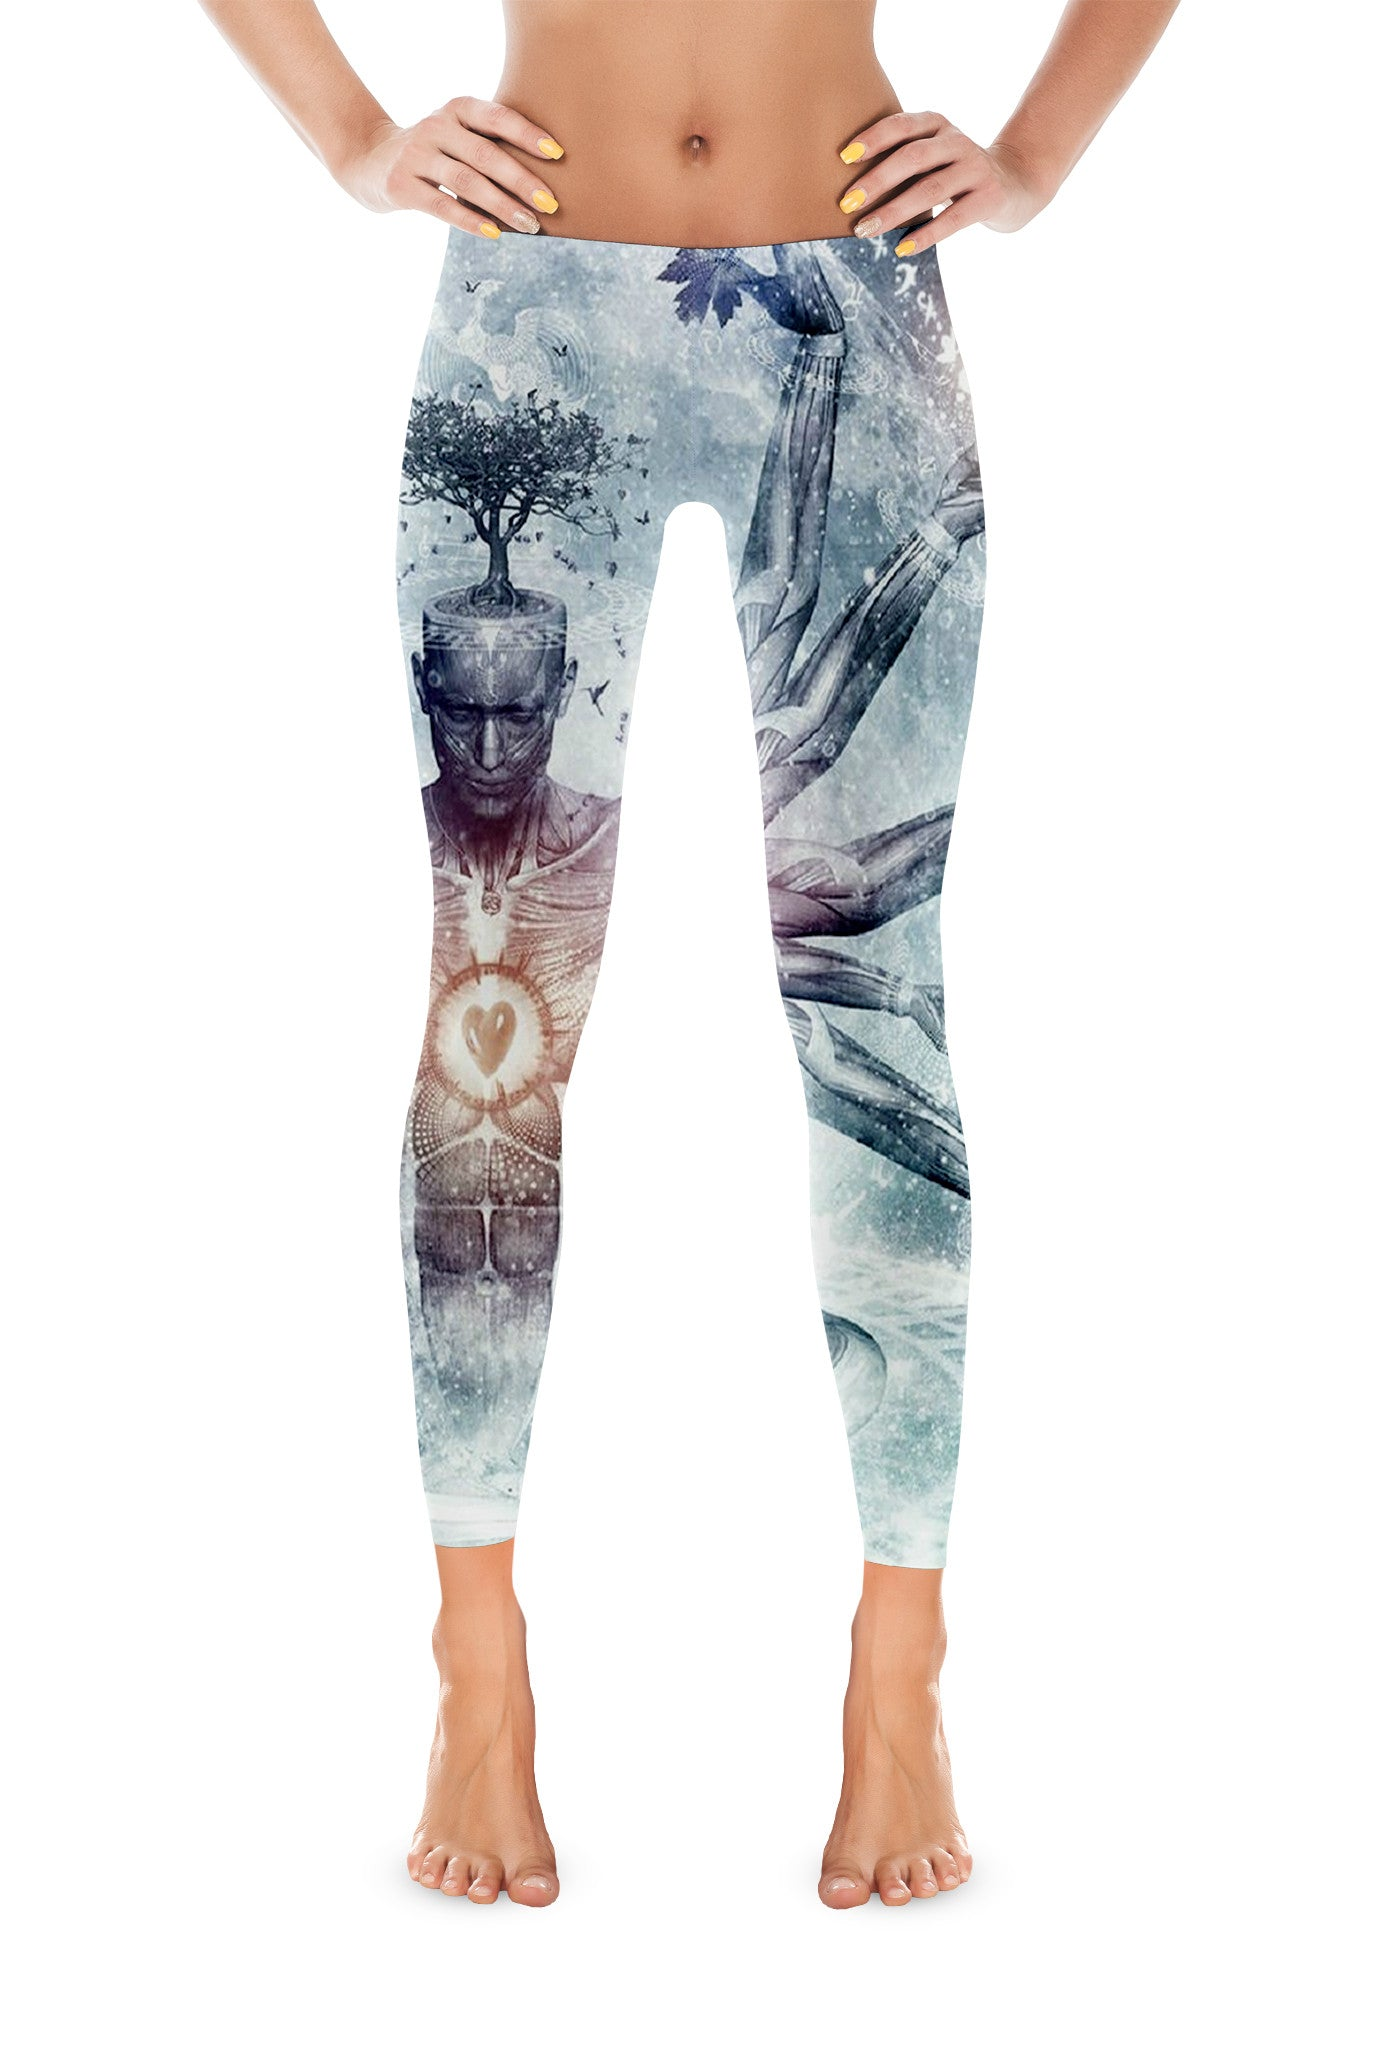 Cosmic Legging - Square Boy Clothing